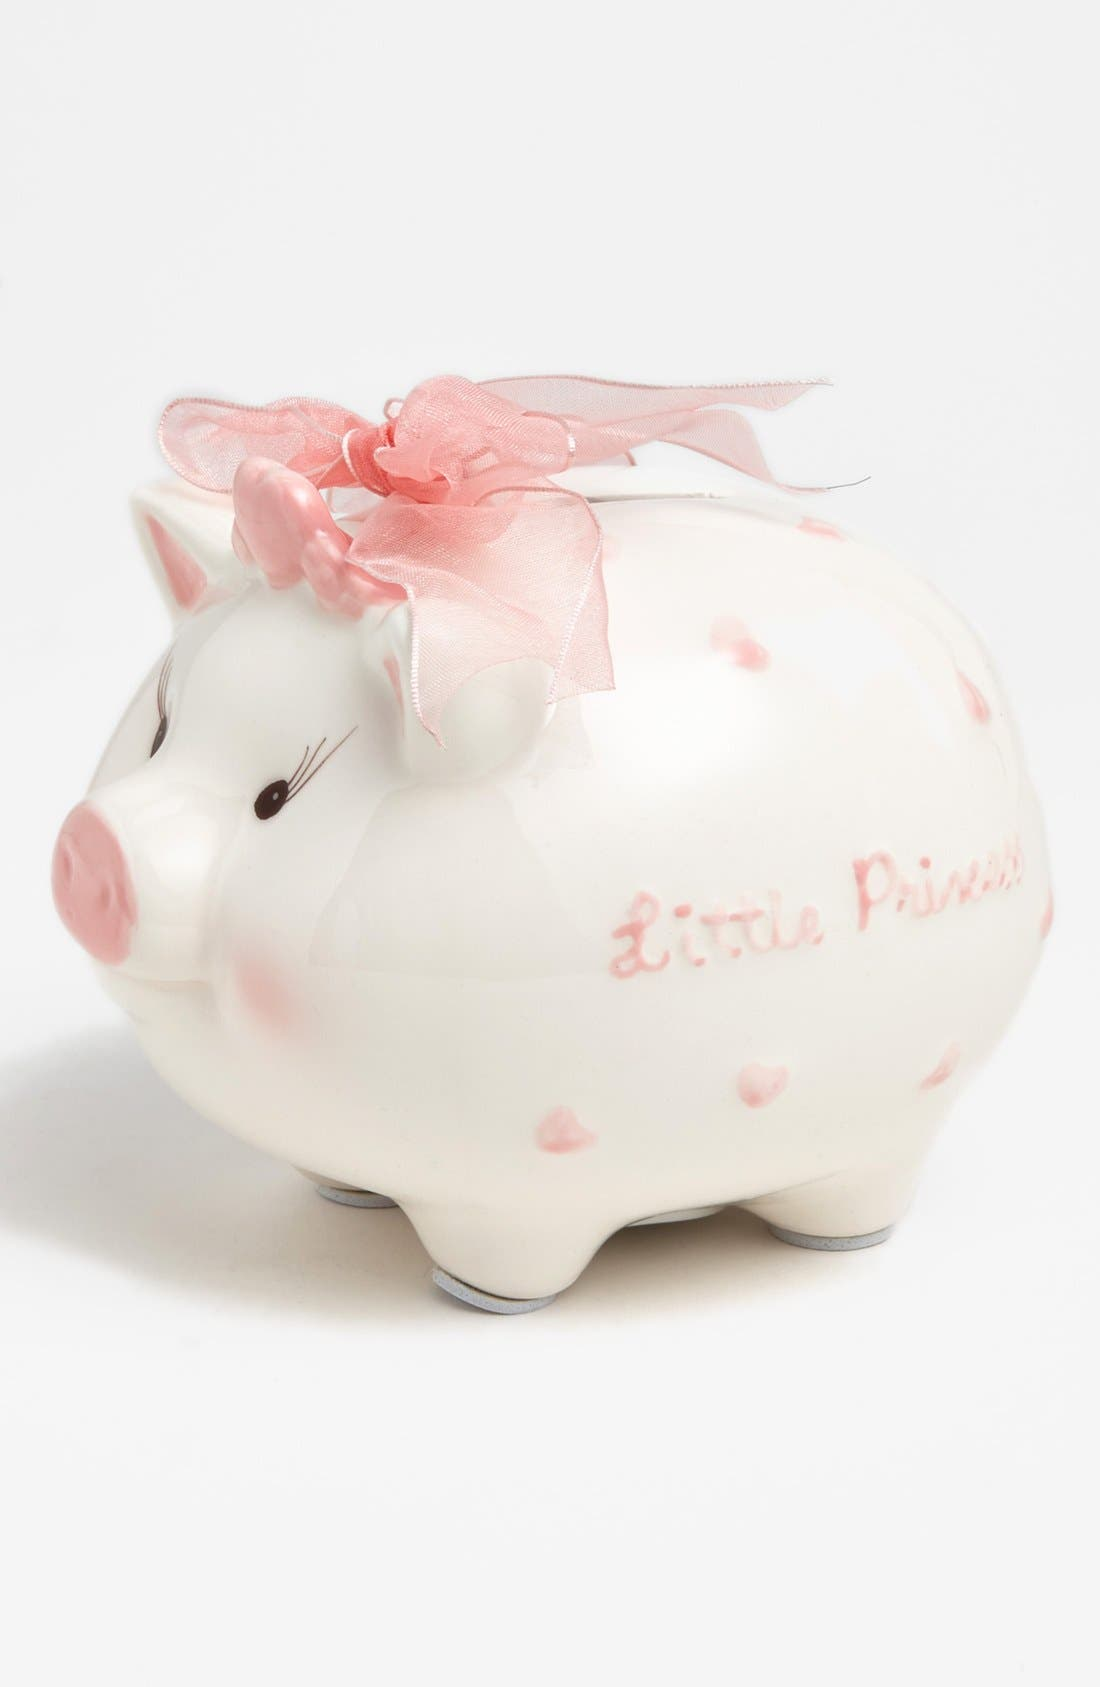 Mud pie ballerina piggy bank mud pie - Mud Pie Ballerina Piggy Bank Mud Pie 13